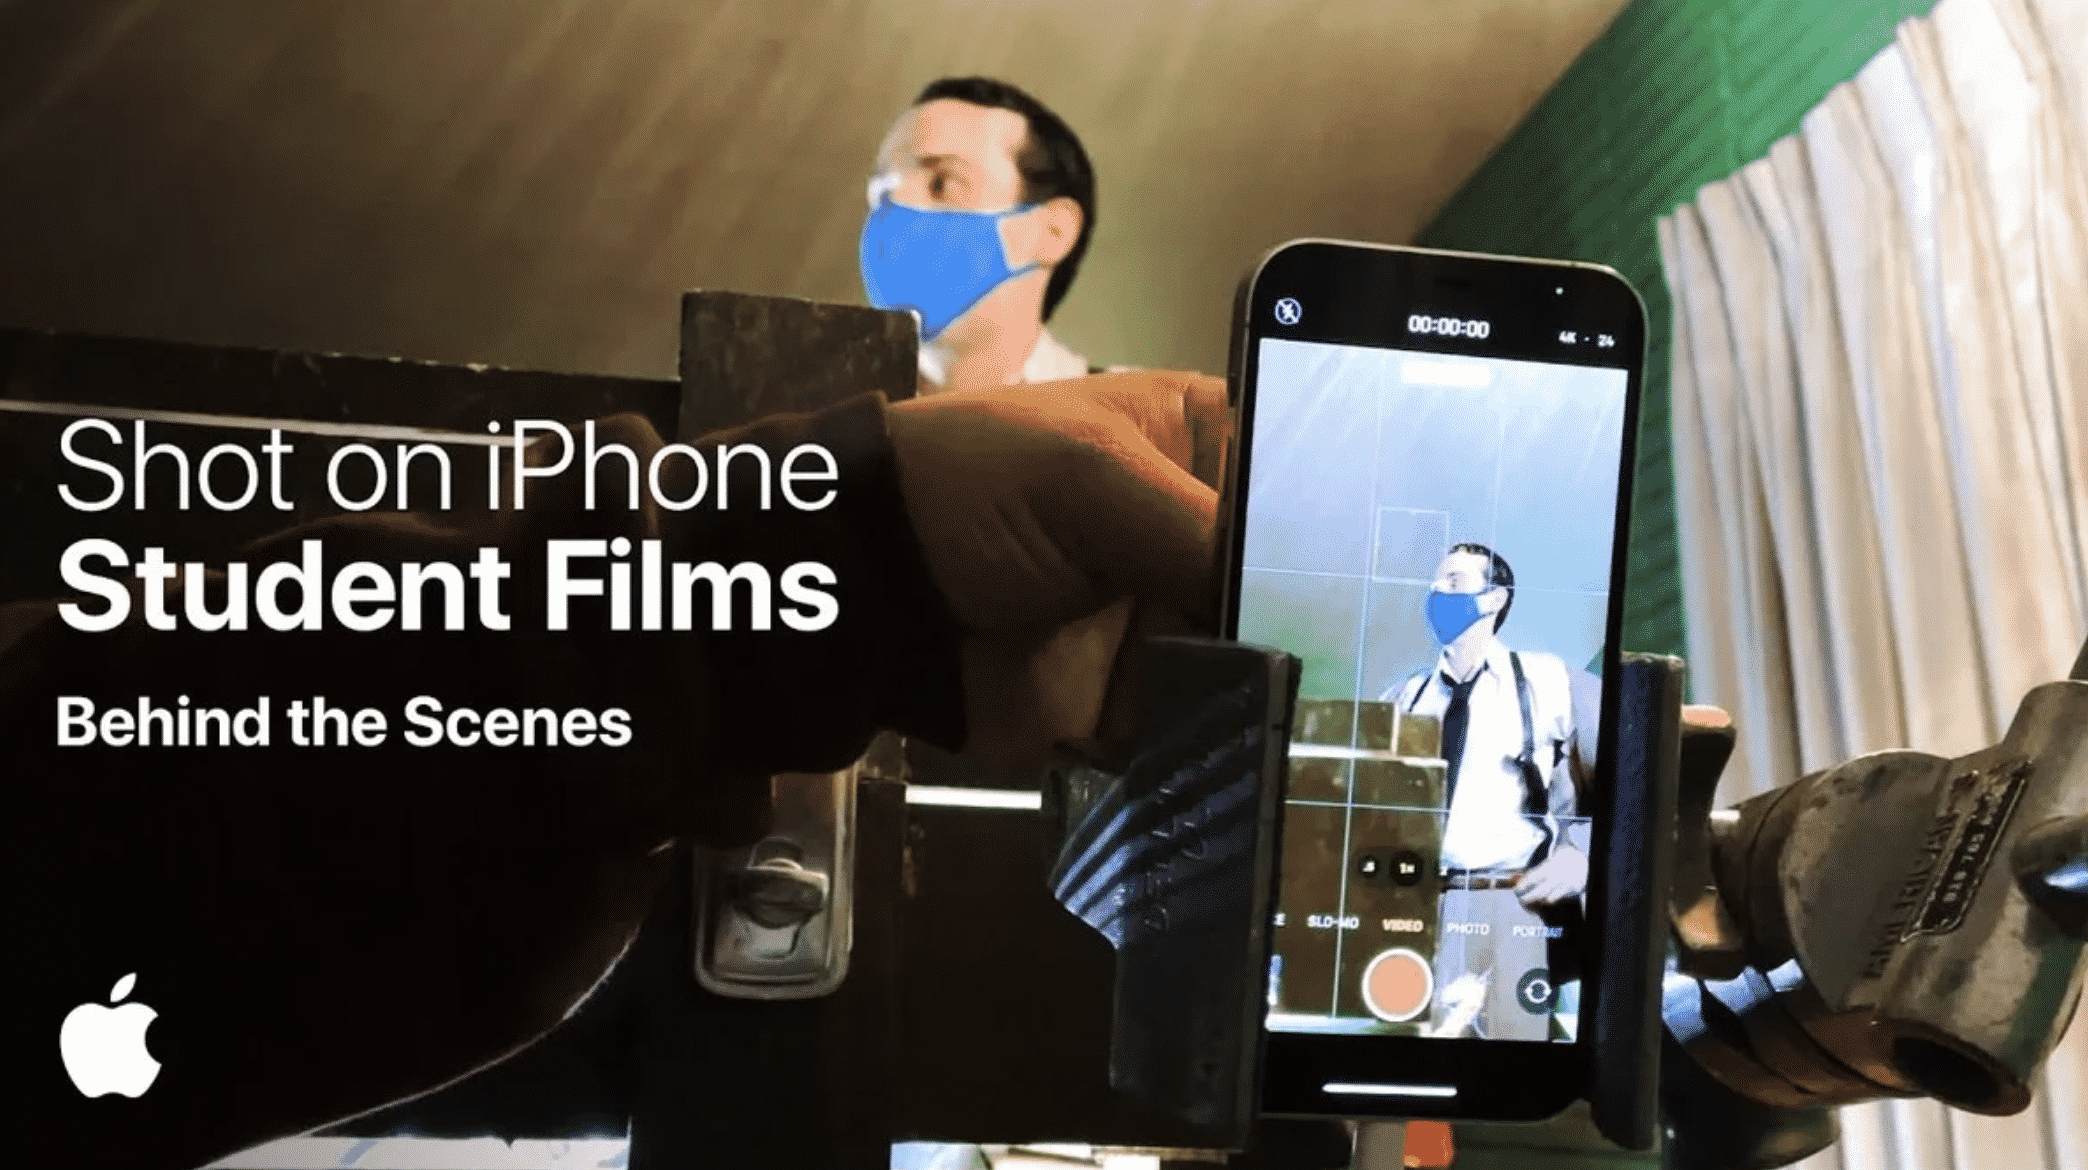 Shot on iPhone Student Films